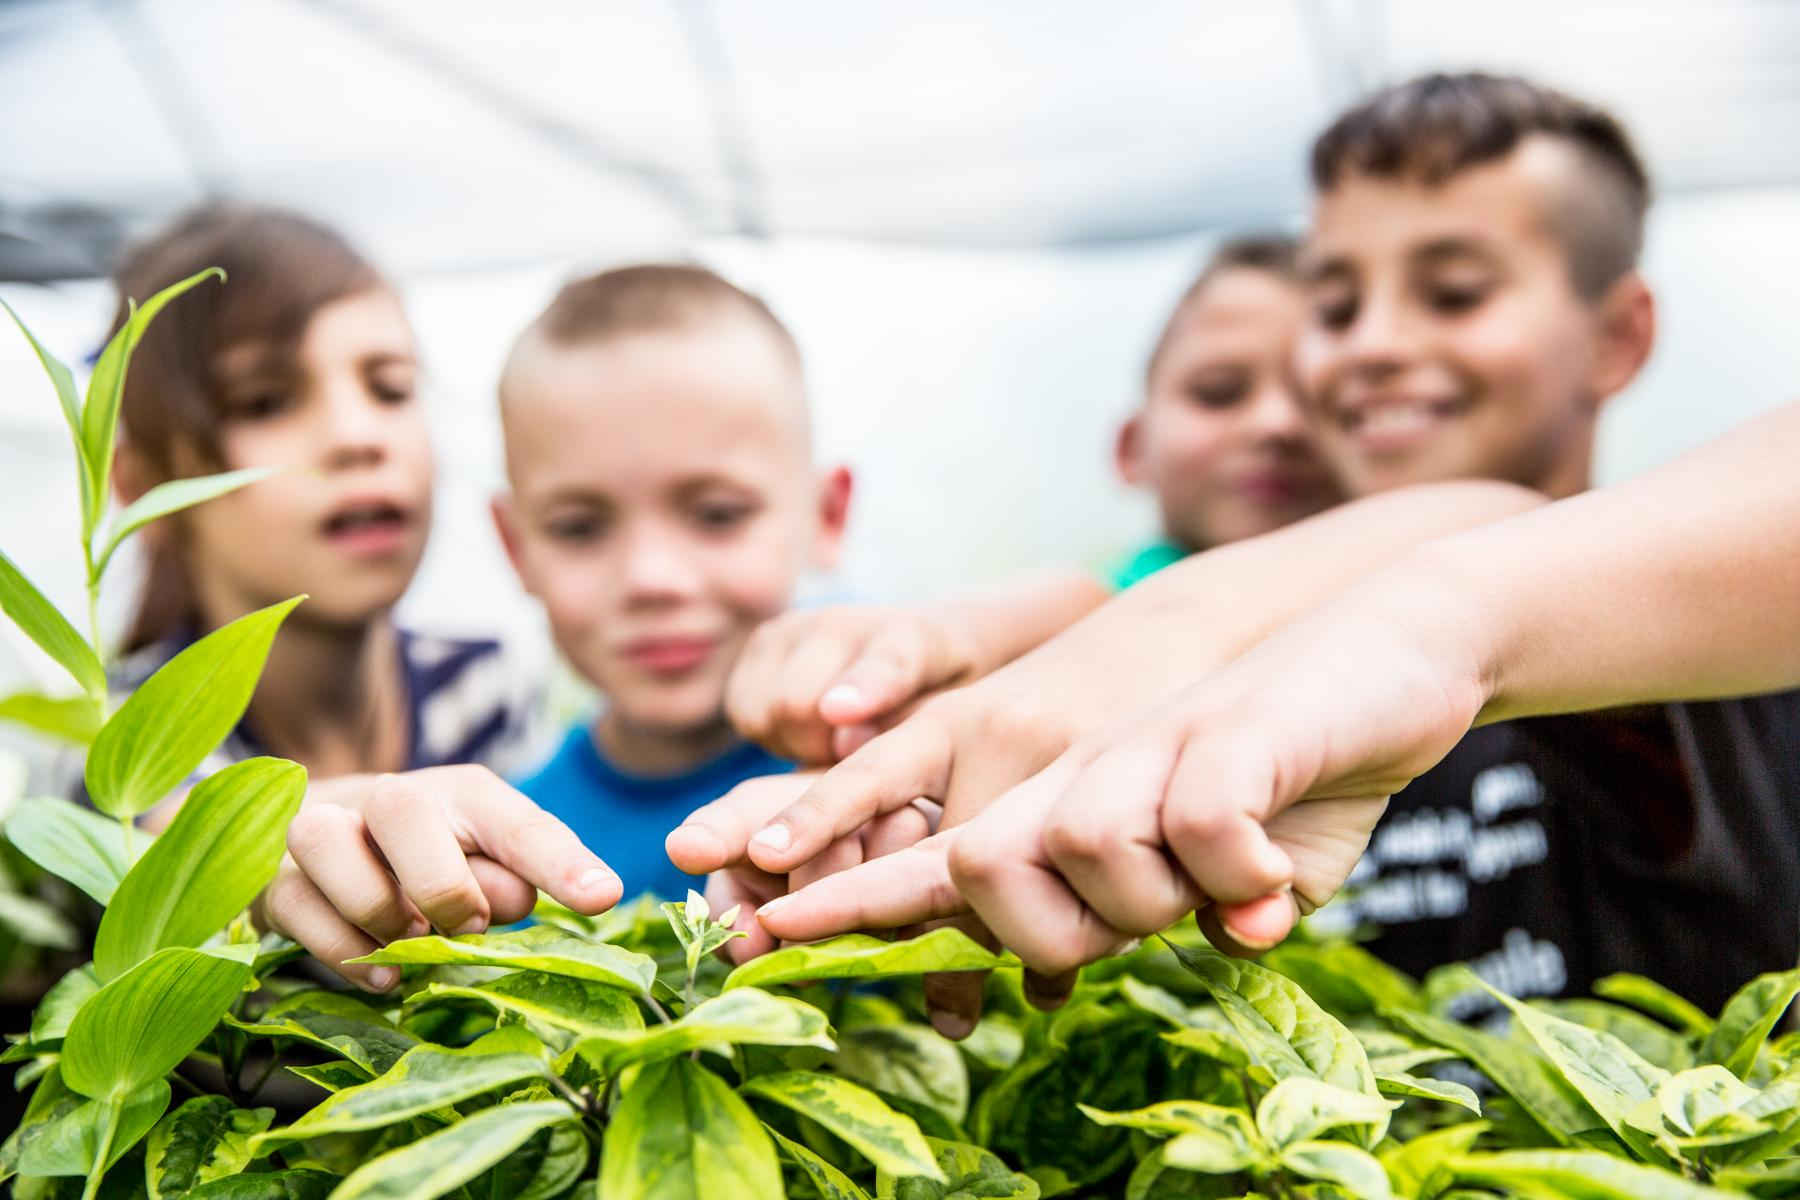 children pointing to the parts of a plant